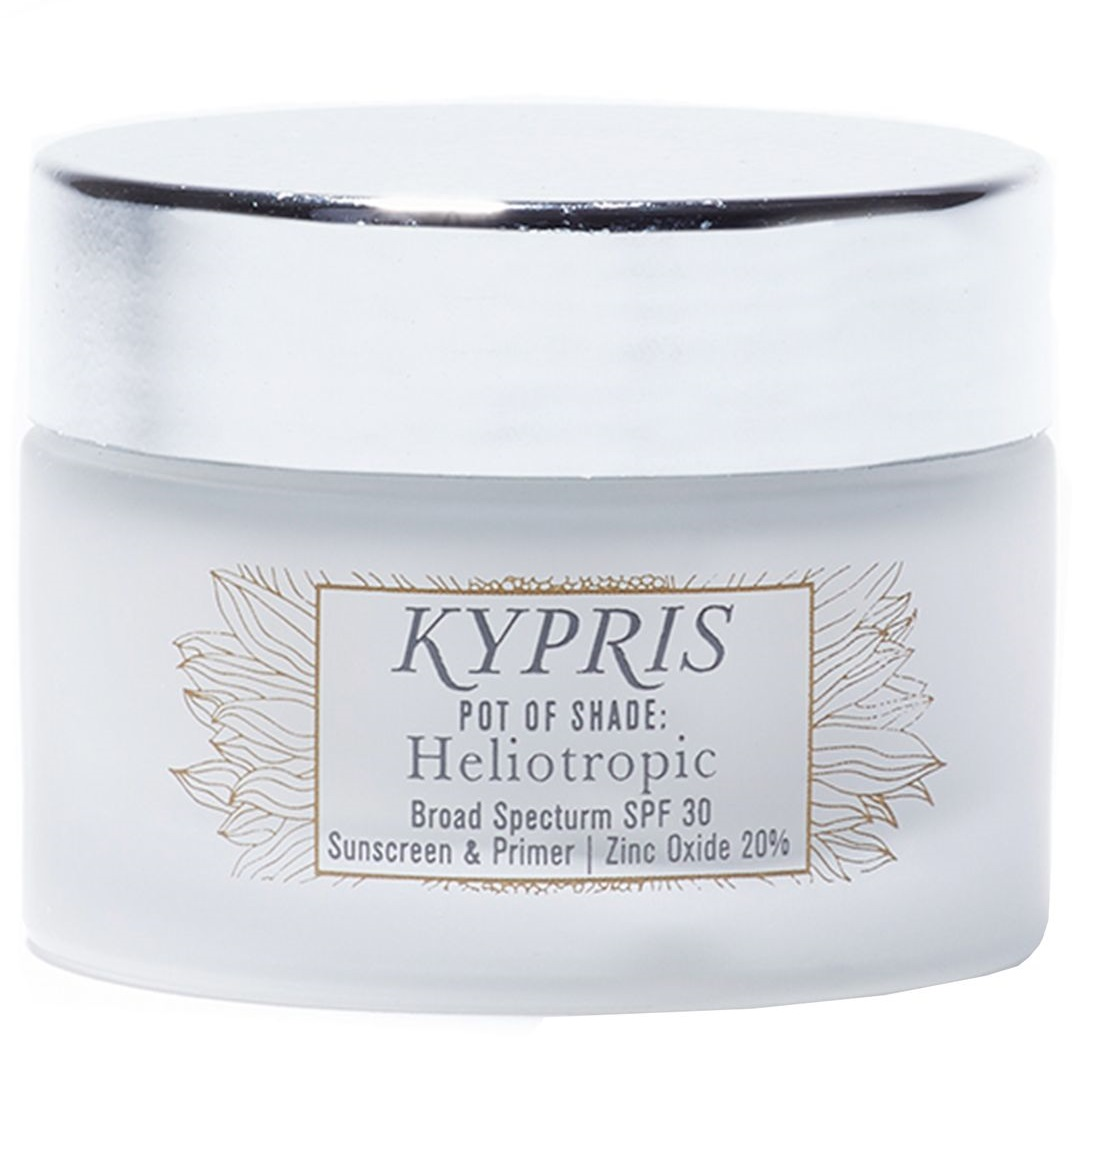 Kypris Pot Of Shade: Helitropic Spf 30